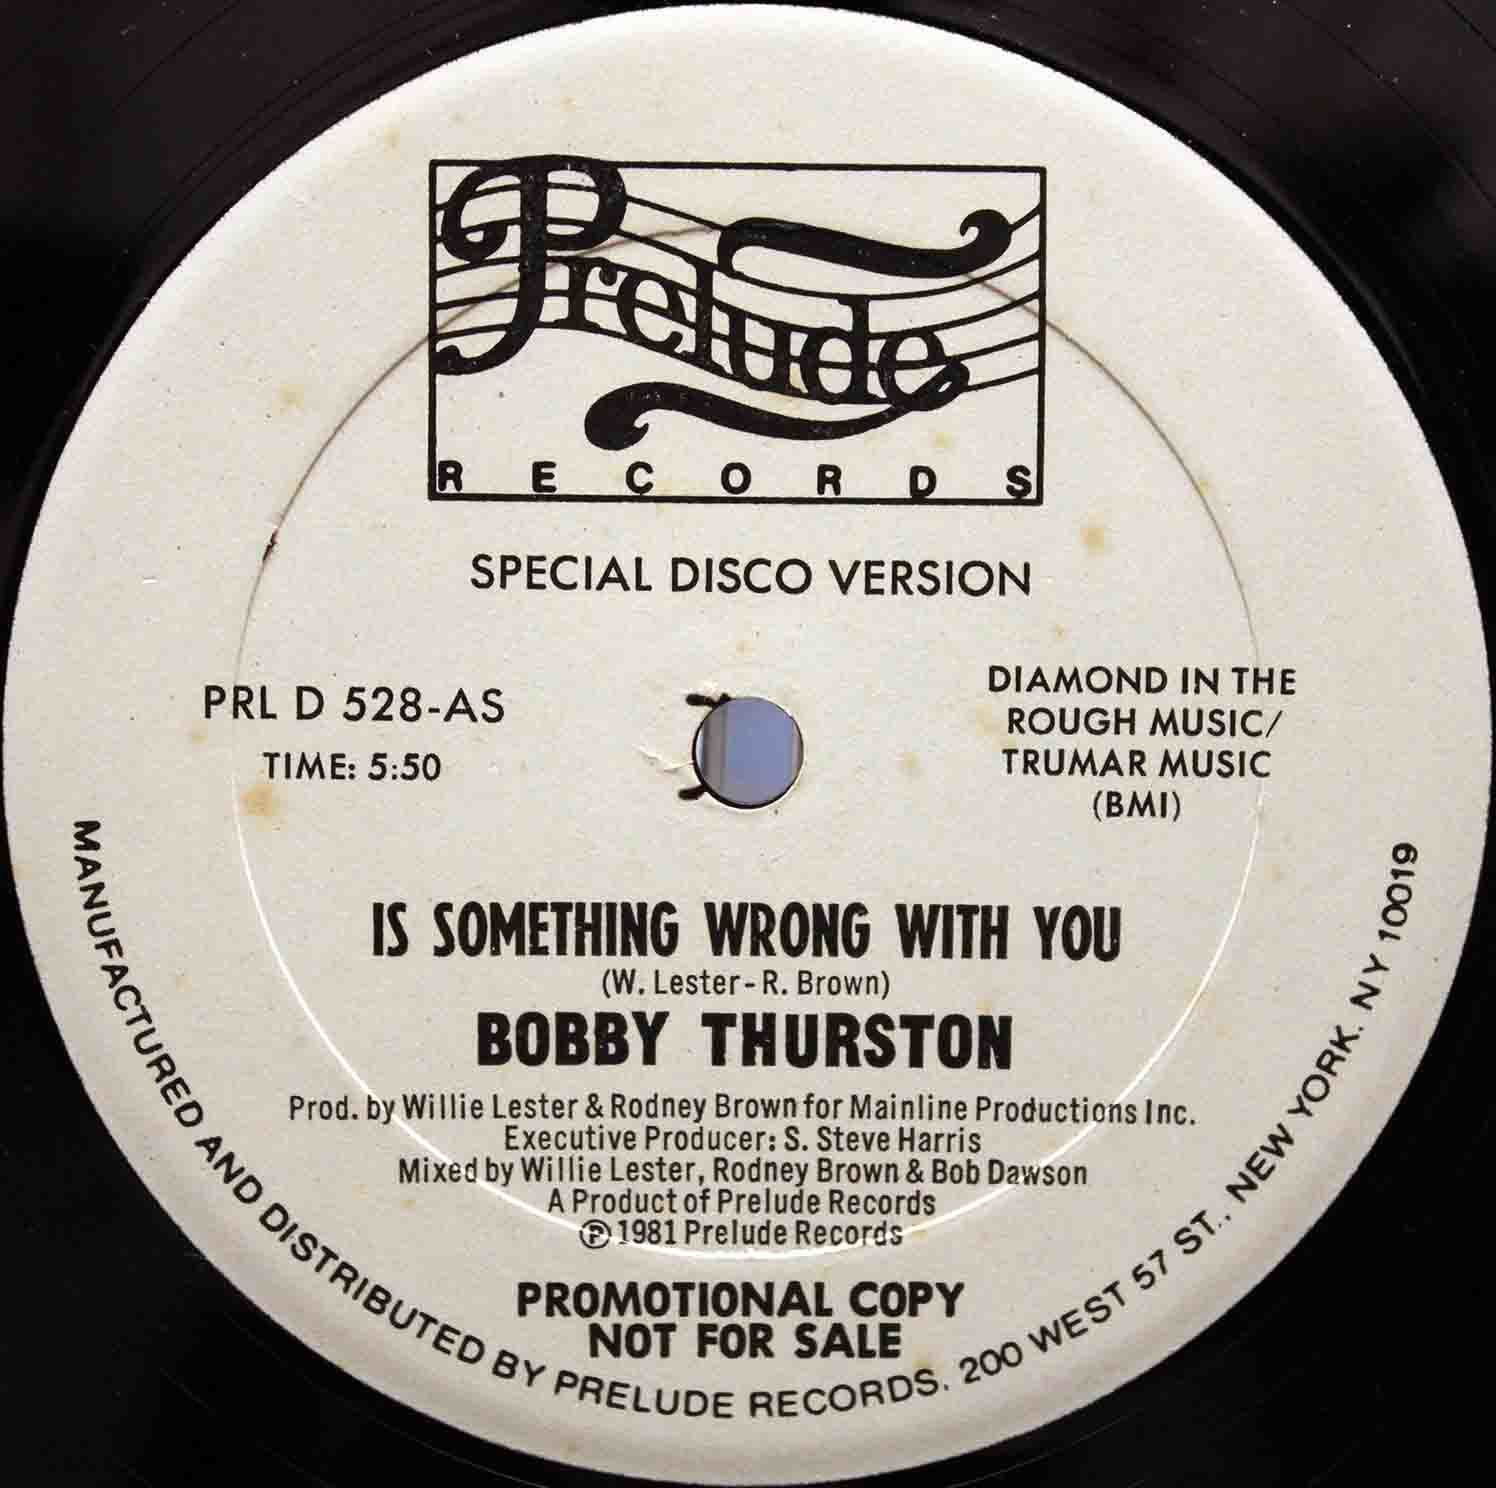 Bobby Thurston – Is Something Wrong With You 03